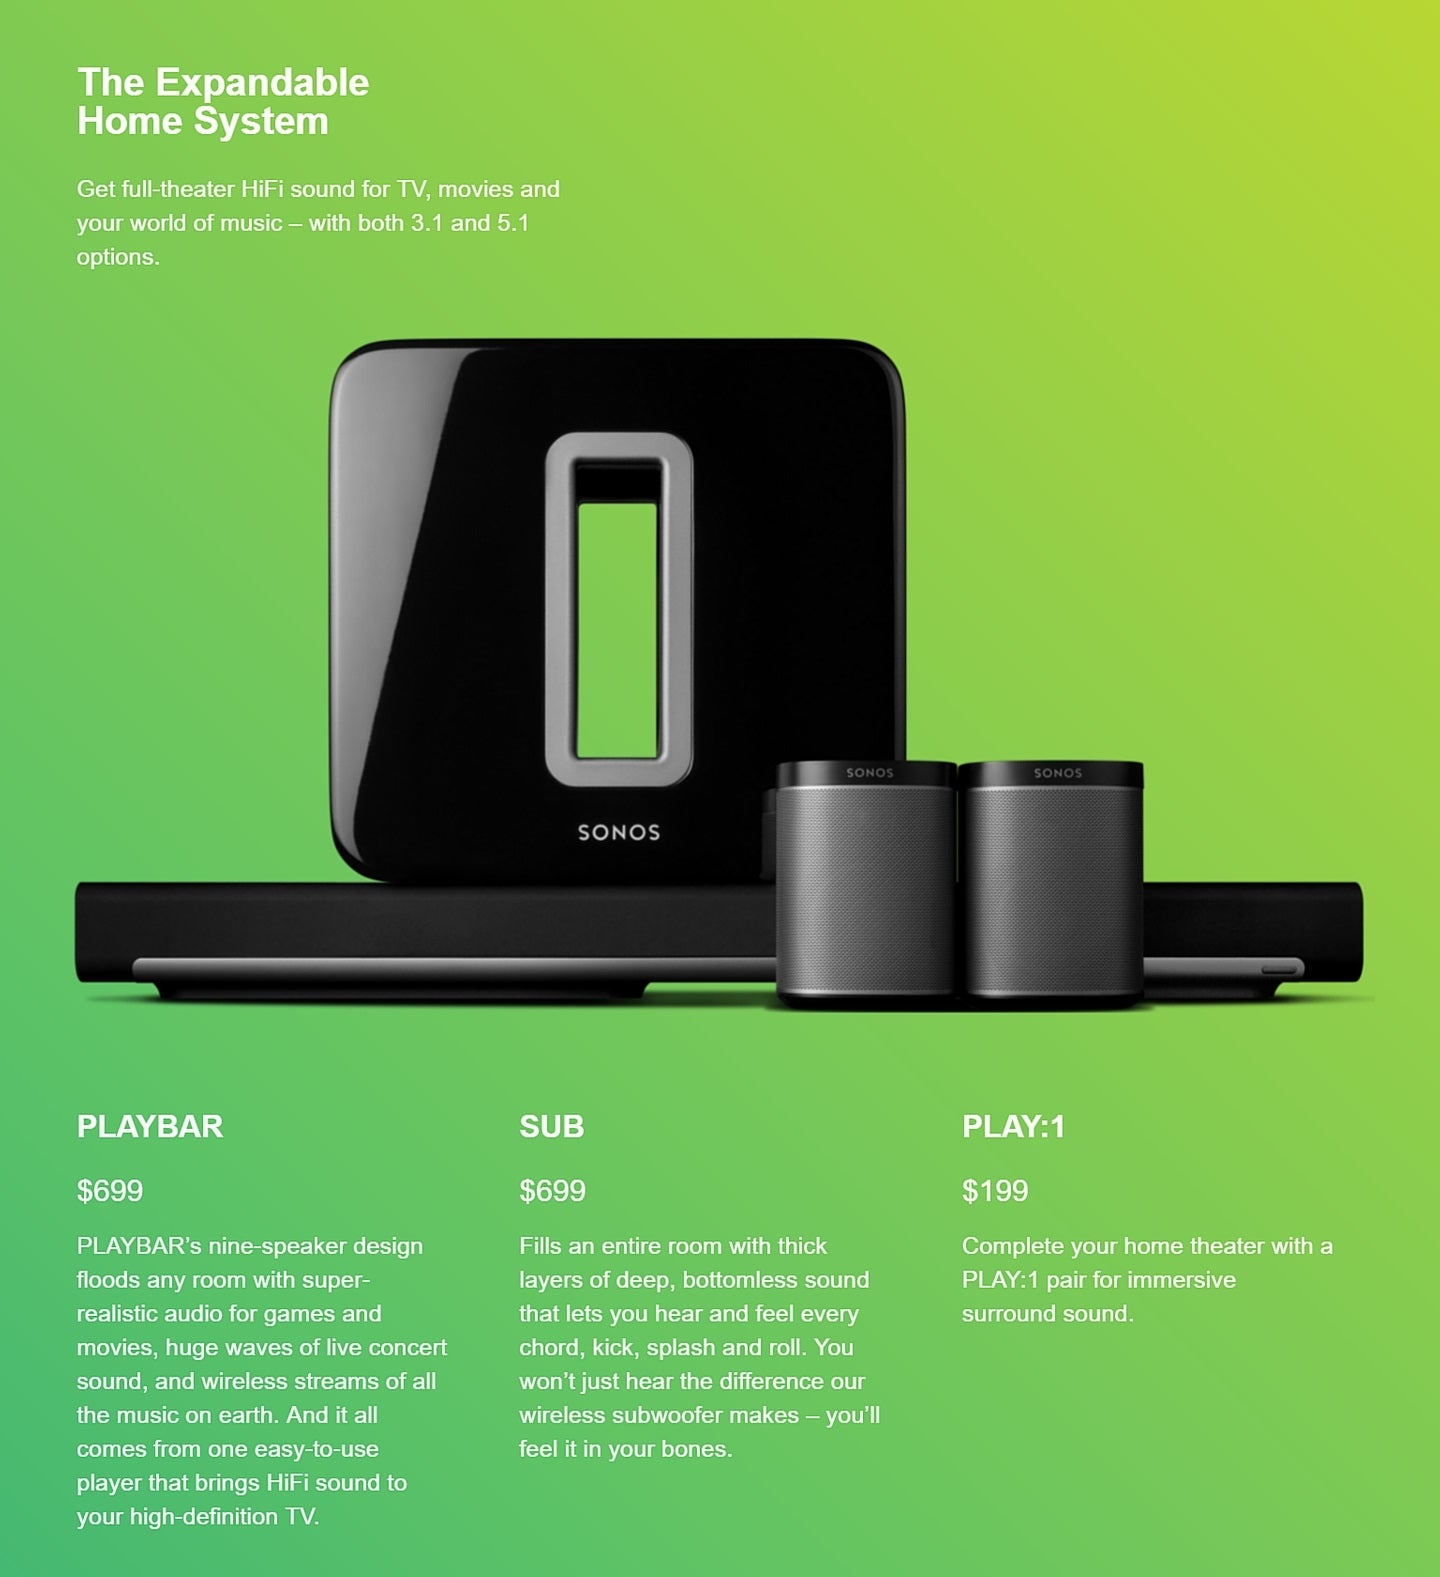 sonos-playbar-sub-play1-expandable-home-system